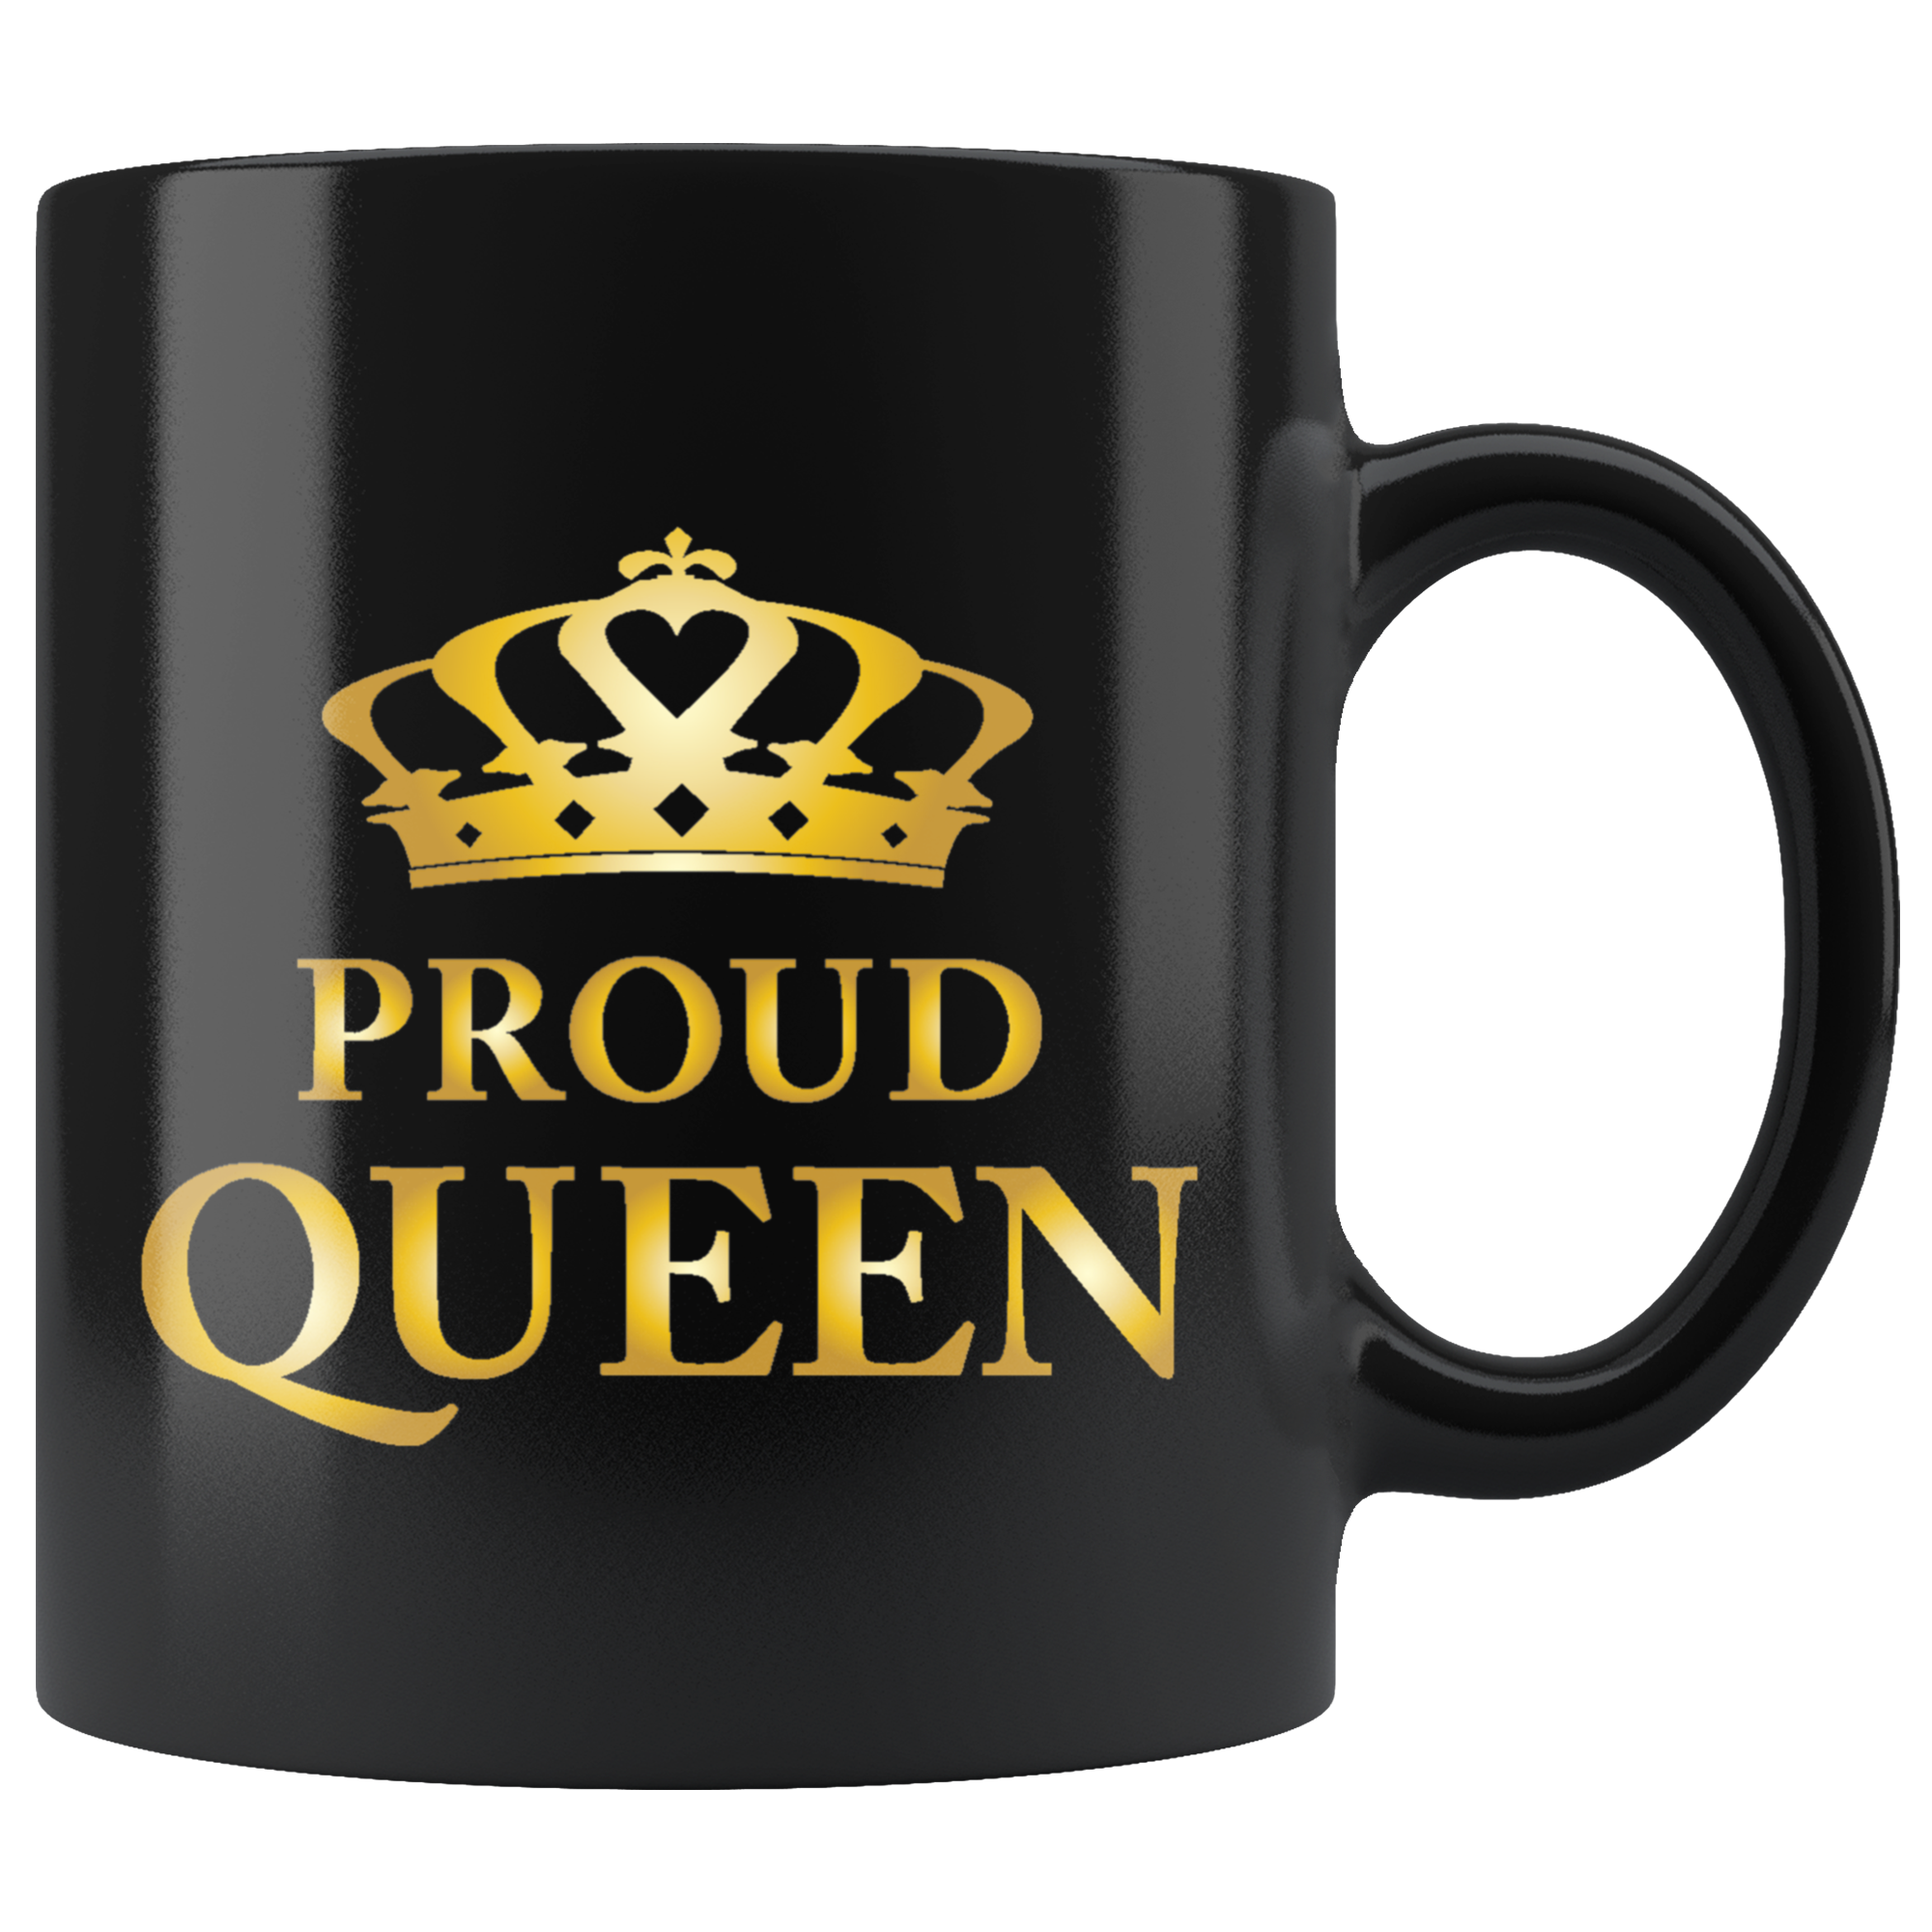 Proud Queen - Black Mug (gold)